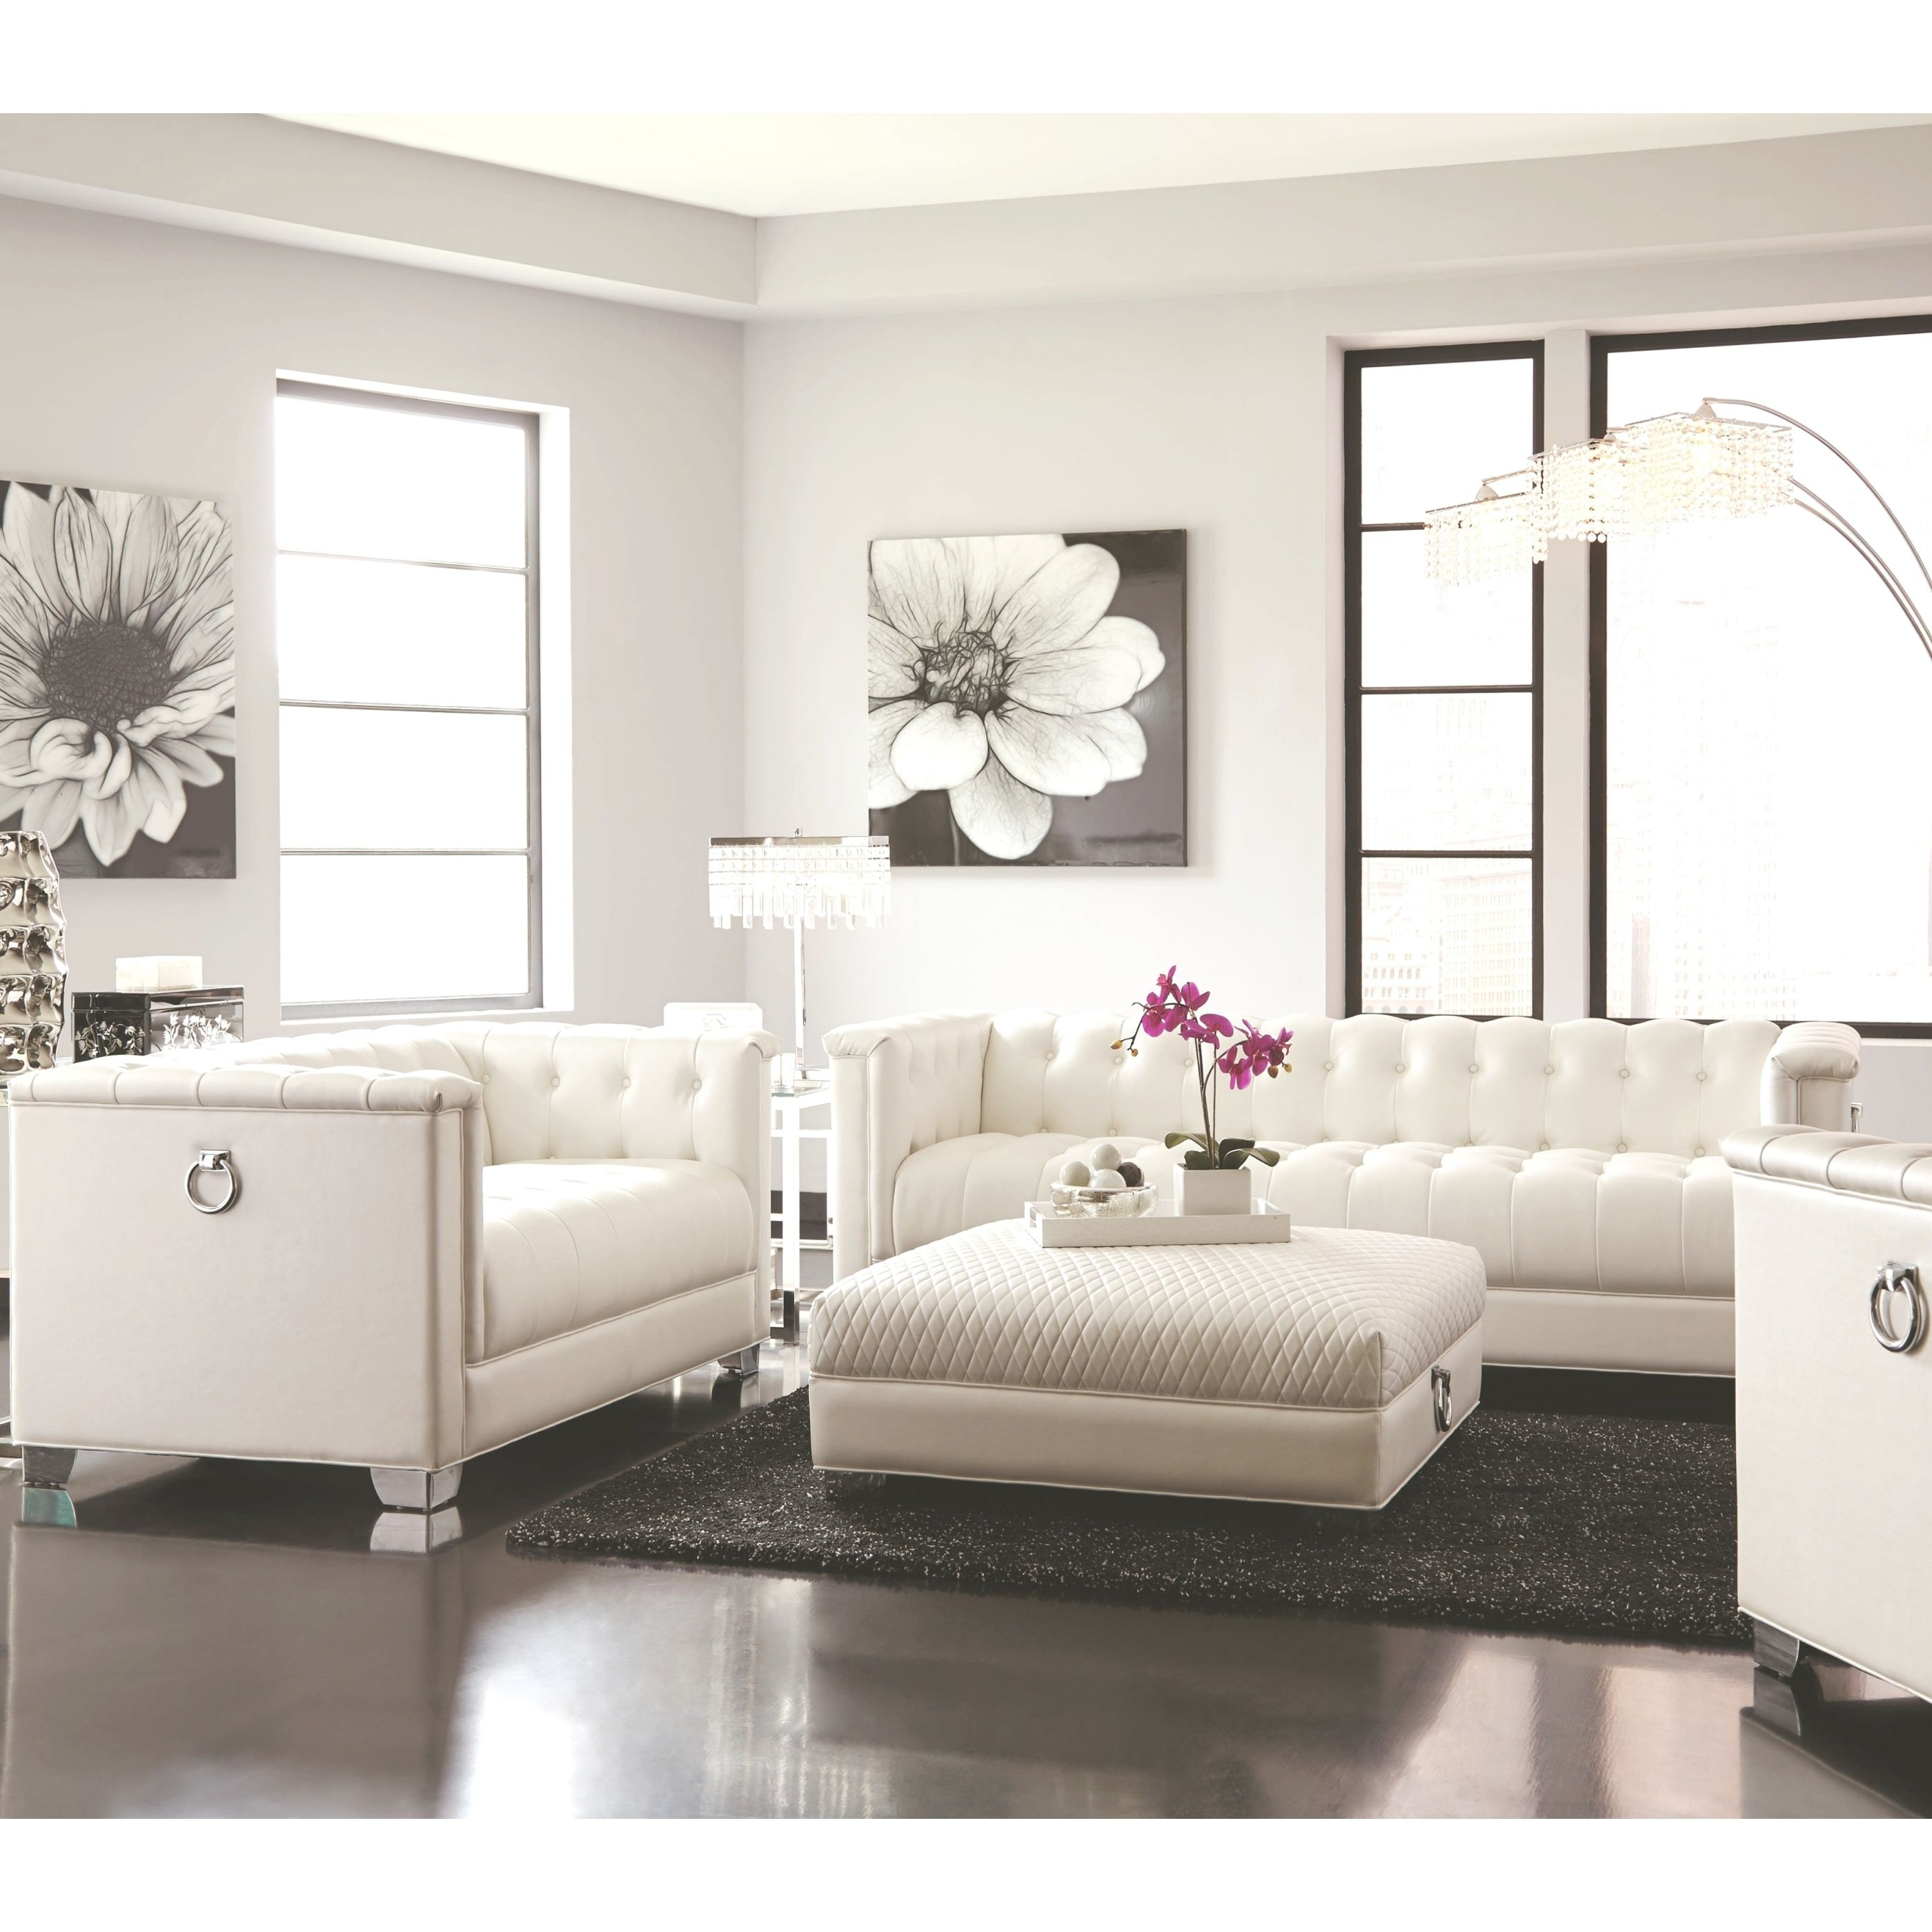 Classic Mid-Century Button Tufted Design Living Room Sofa Collection With Chrome Doorknocker Handles inside Tufted Living Room Furniture